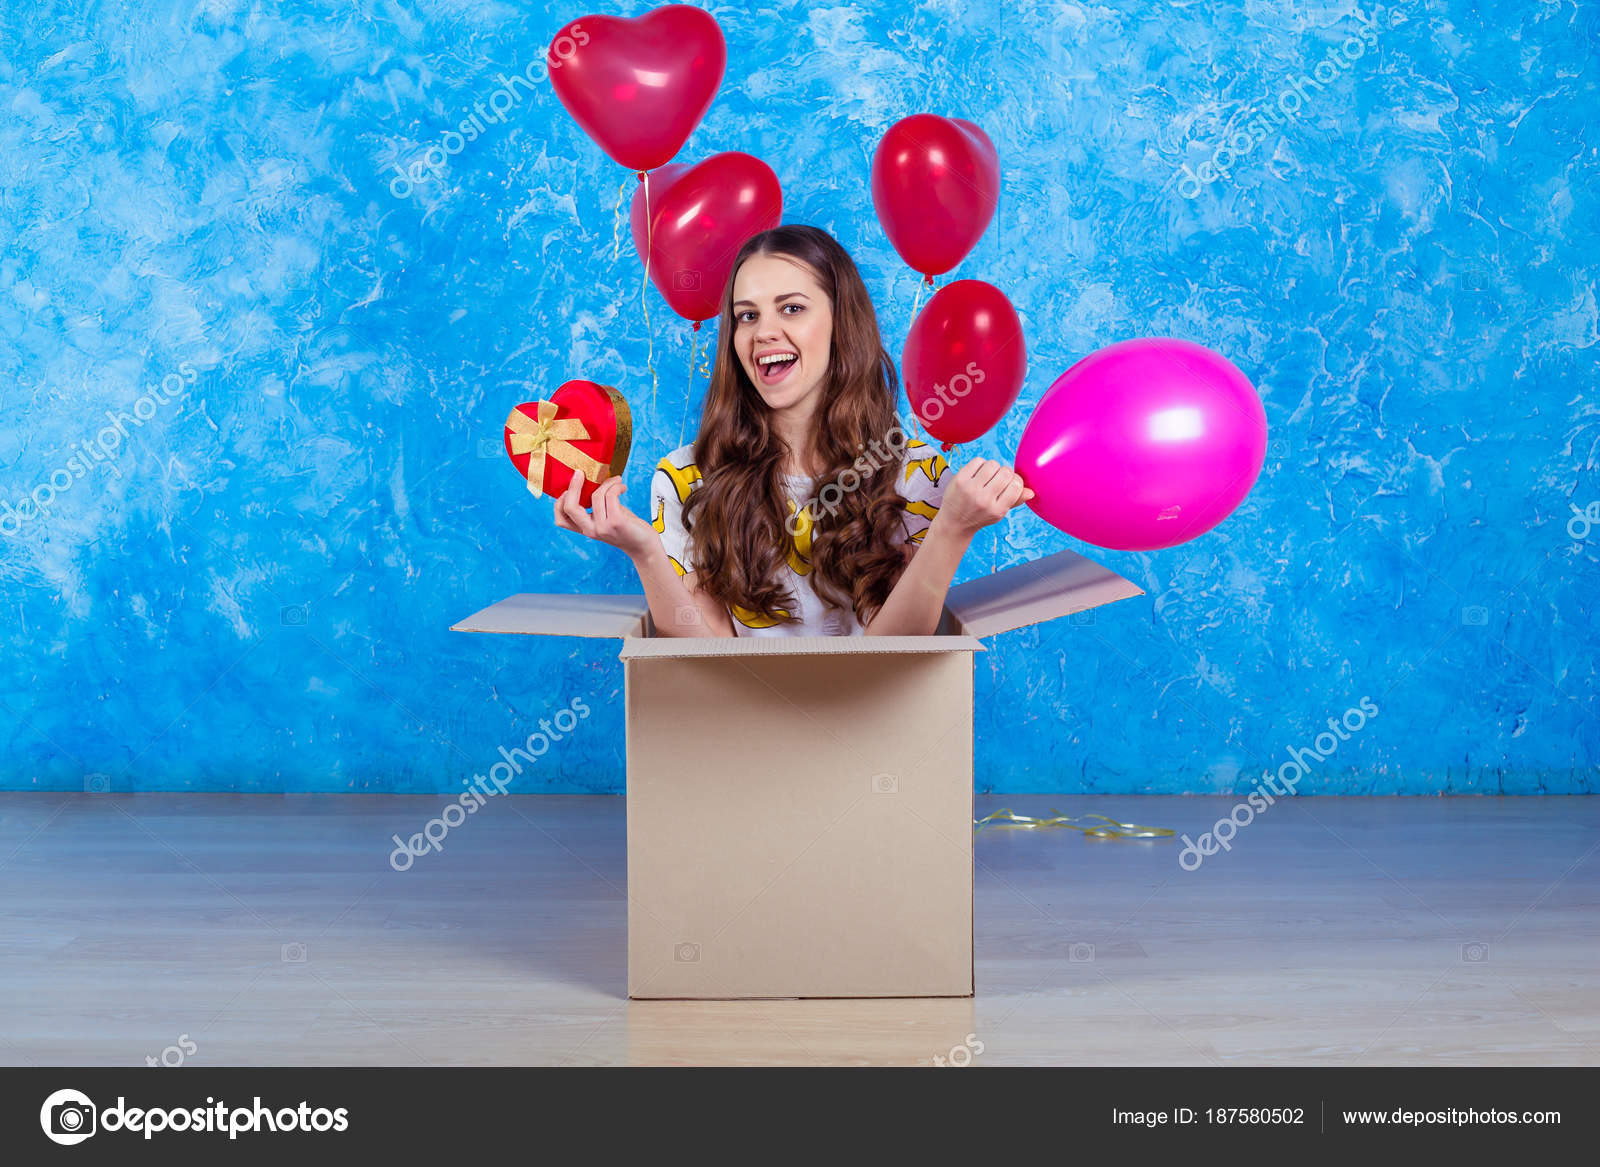 Happy Birthday Funny Smiling Young Girl Sitting Cardboard Box Gift Stock Photo